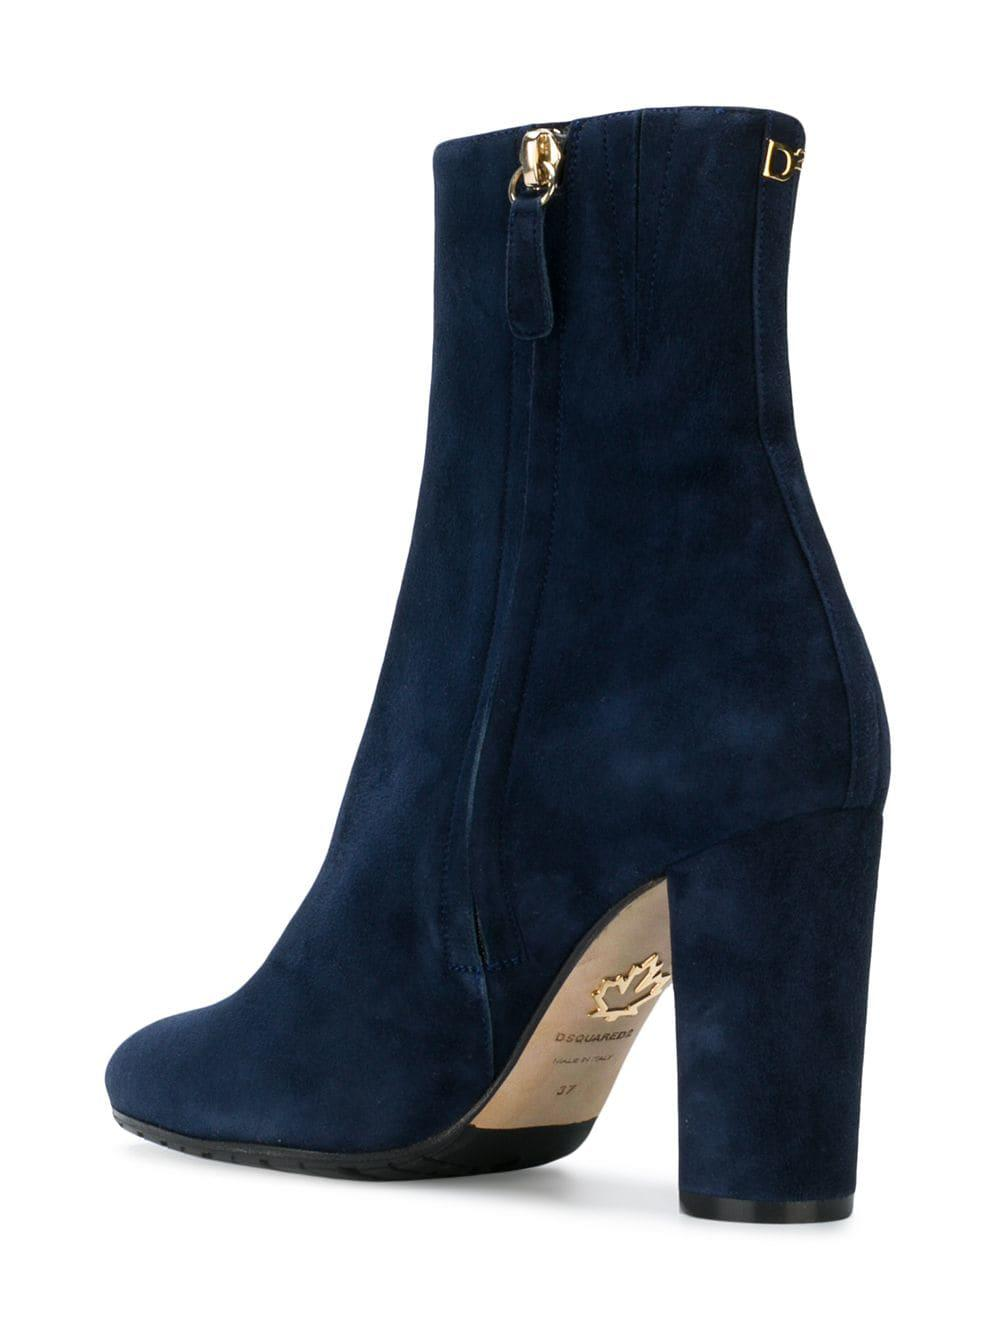 DSquared² Leather Almond Toe Ankle Boots in Blue